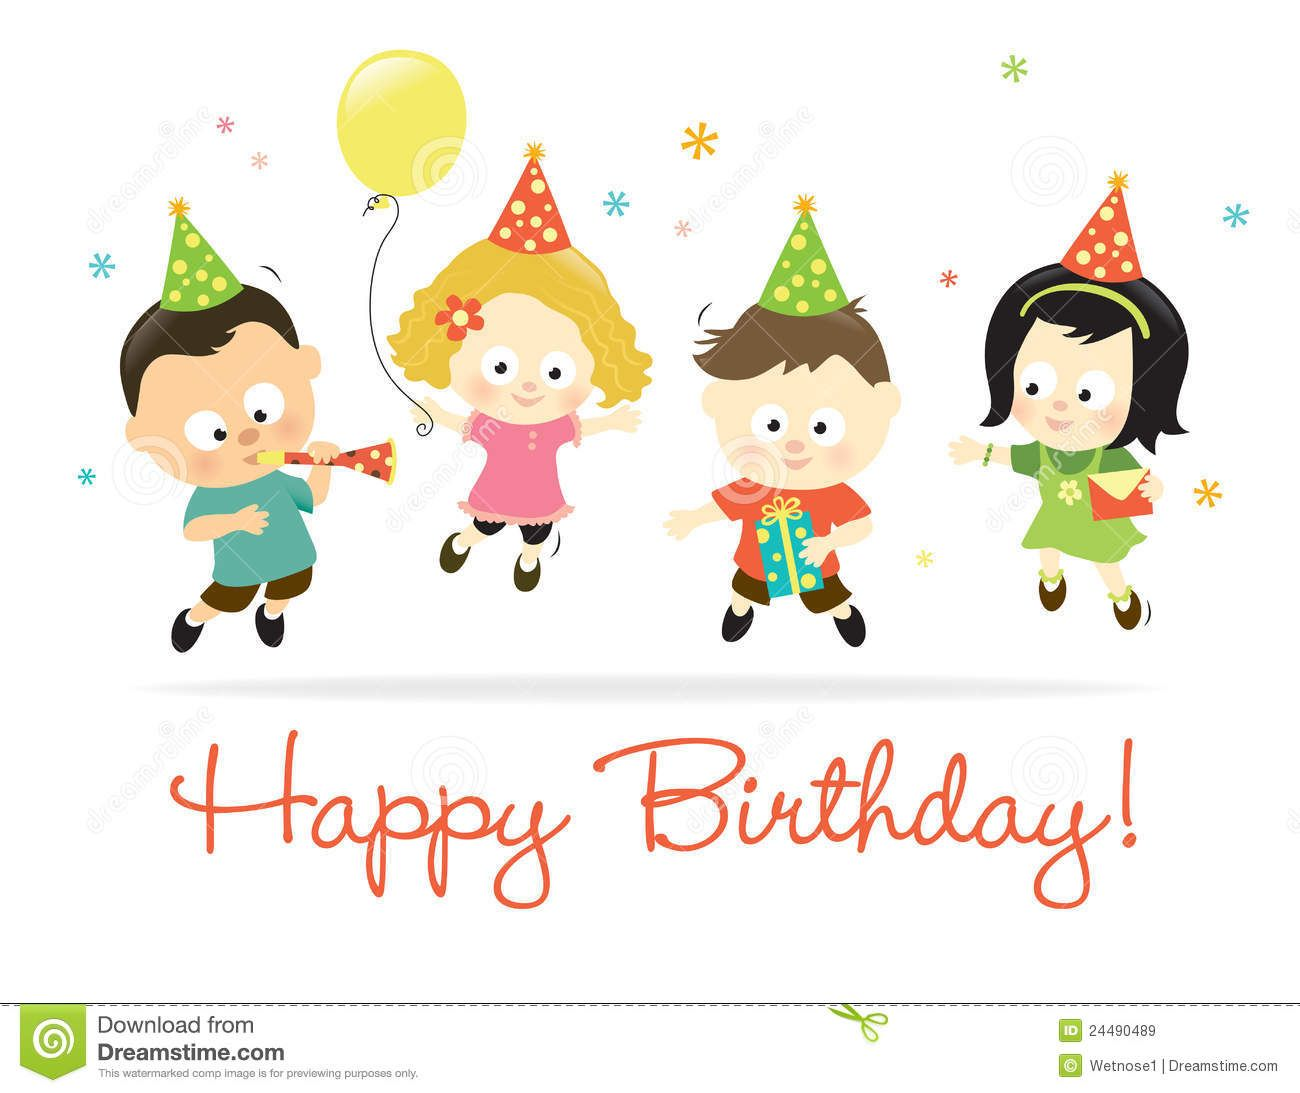 Happy birthday kids 2 royalty free stock images image 24490489 happy birthday kids 2 royalty free stock images image 24490489 bookmarktalkfo Gallery